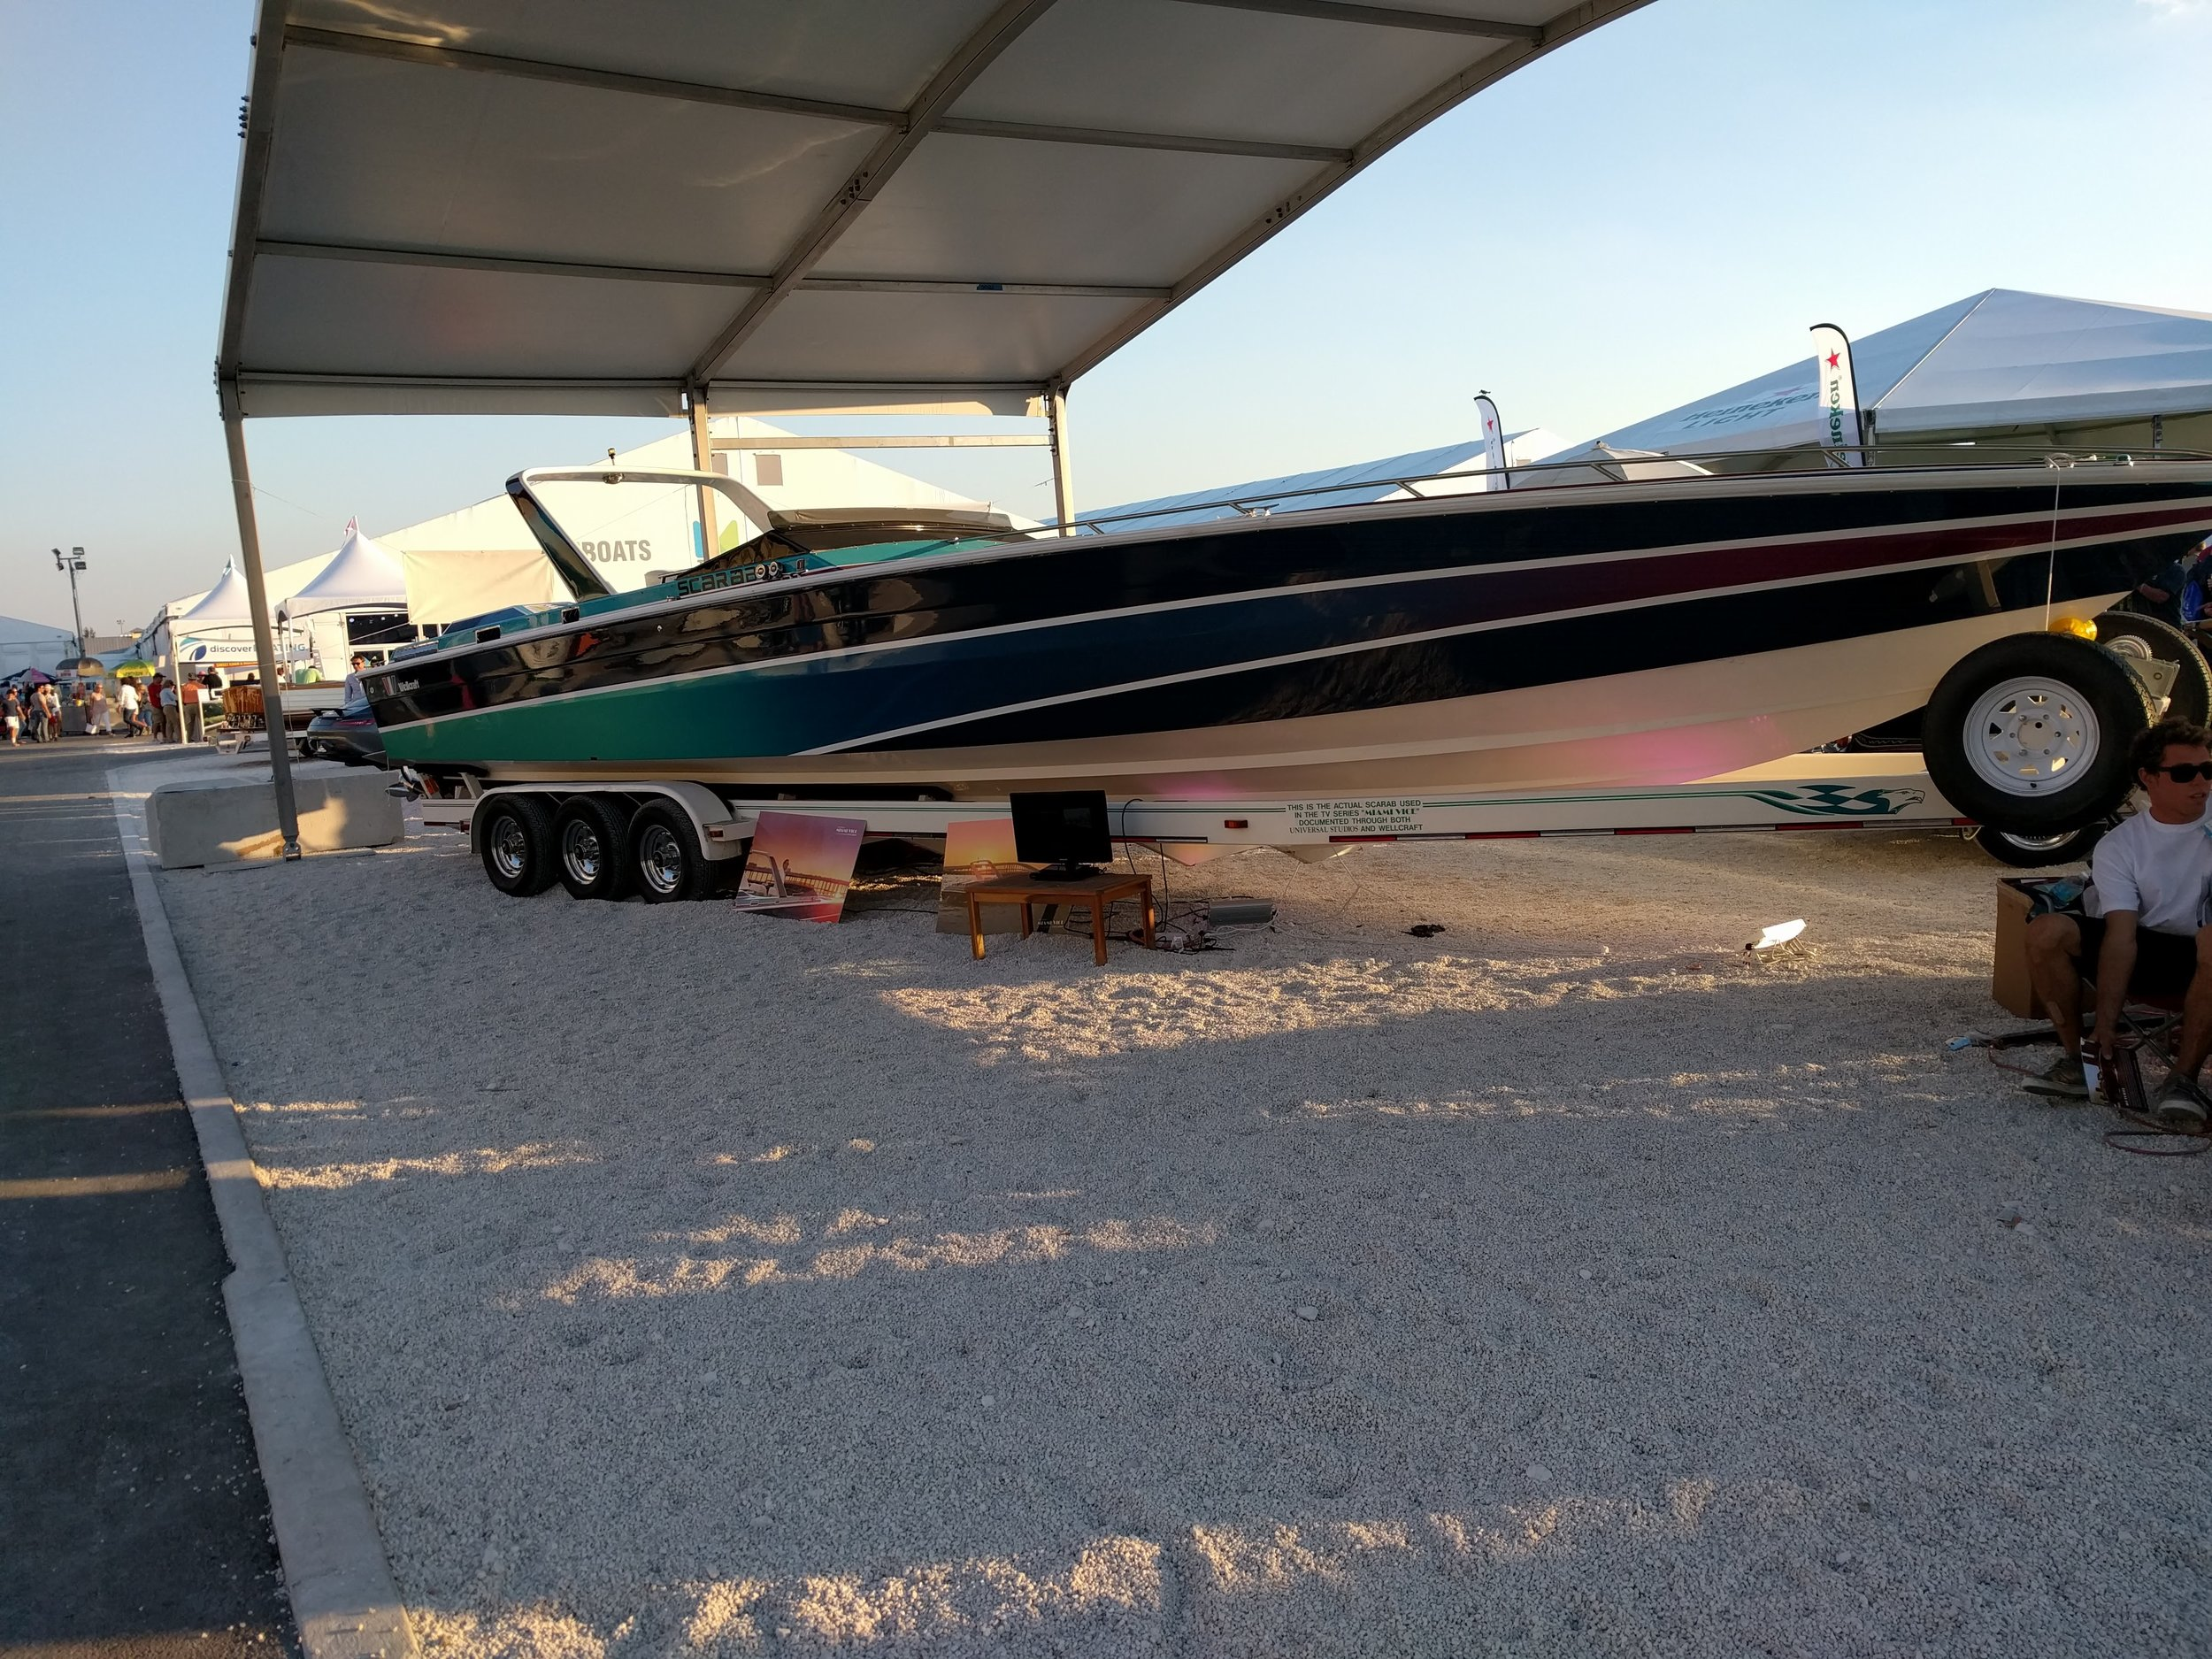 The striking paint job on the Miami Vice version shows off the incredible lines of the 38' Scarab. Different variations were made over the years, but the original 38' was a championship race boat that put Team Scarab on the map.